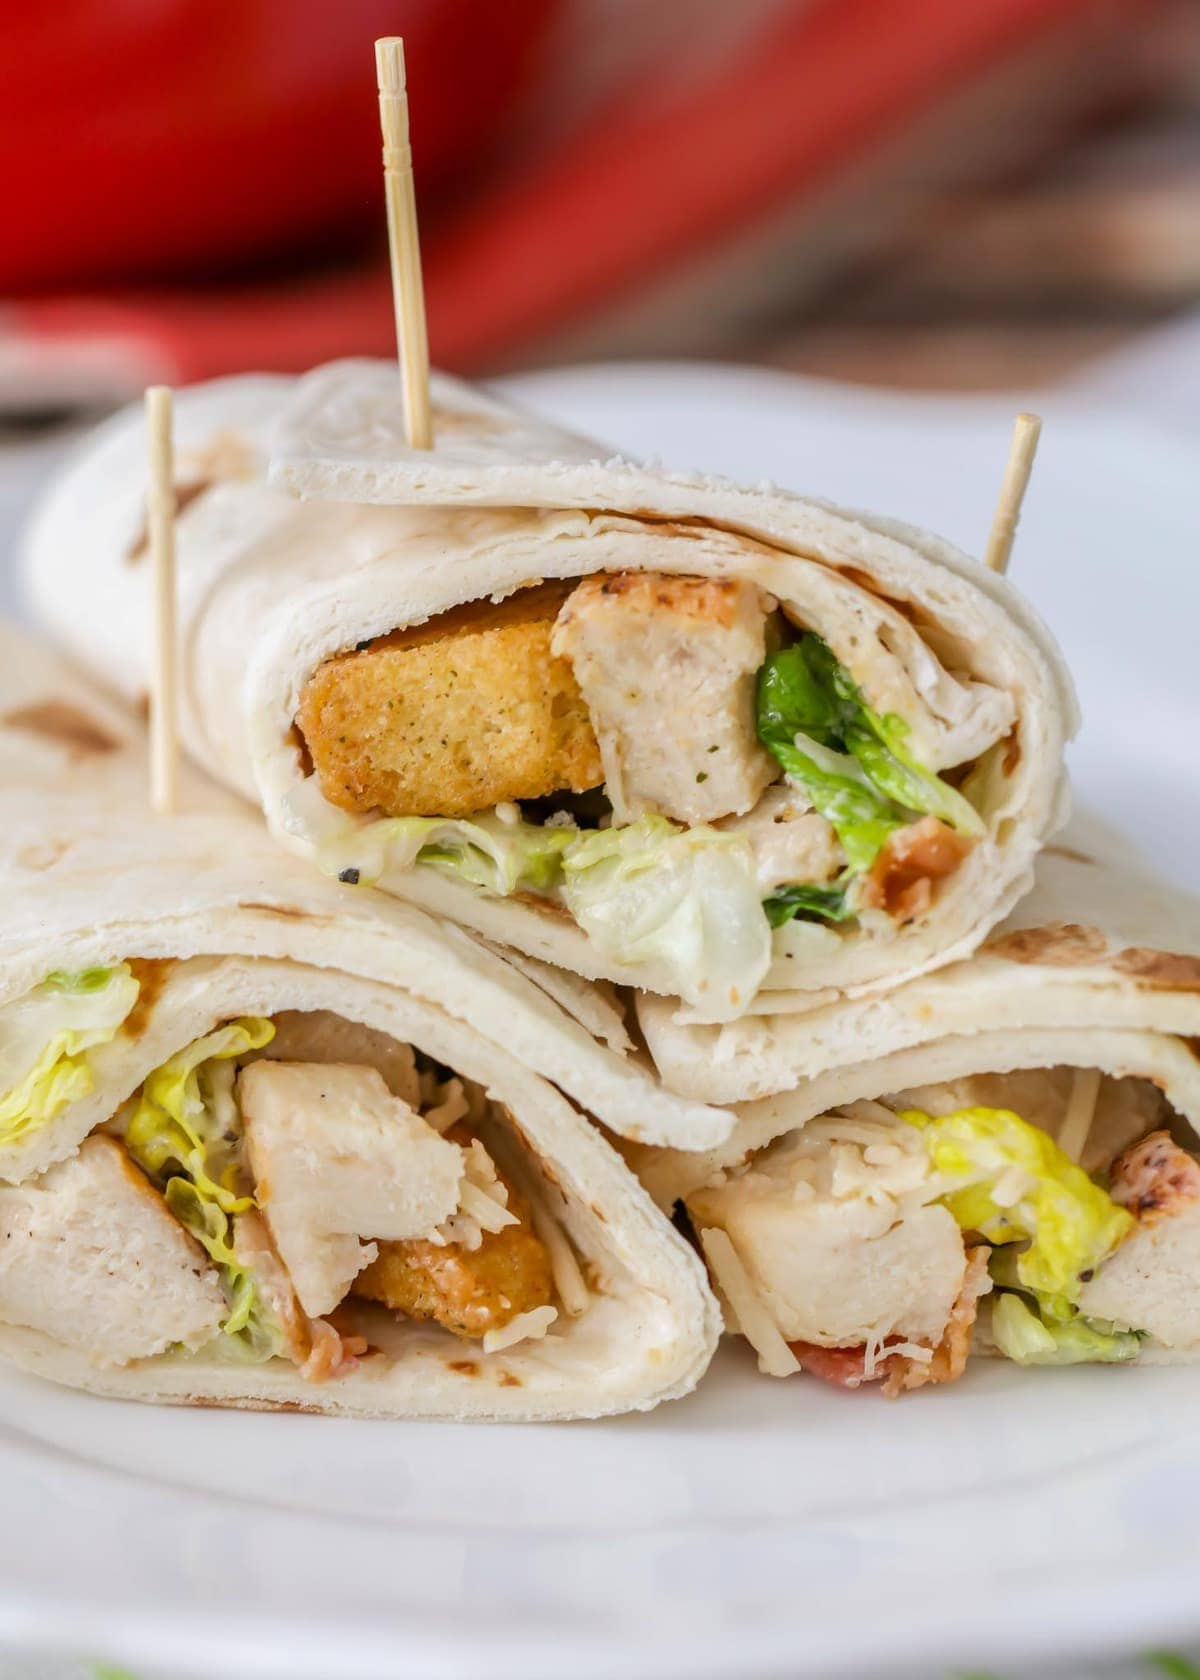 Caesar Salad with Grilled Chicken in Wrap